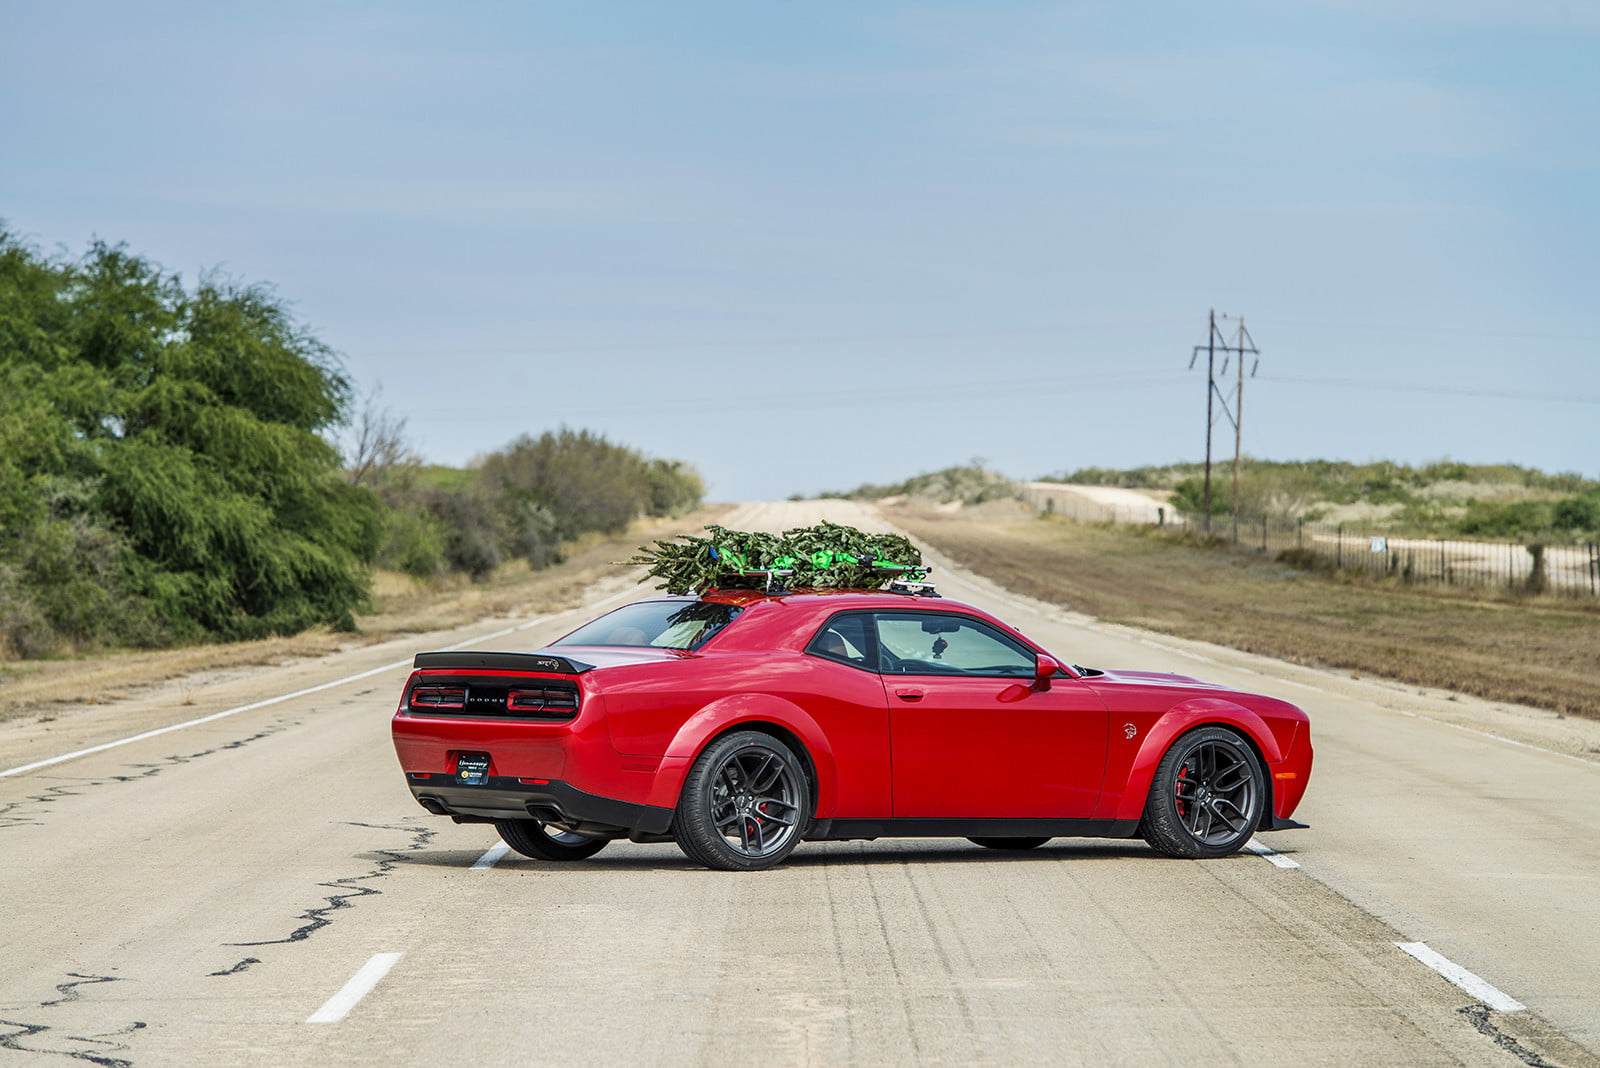 hennessey and dodge takes record for worlds fastest christmas tree 174mph 12